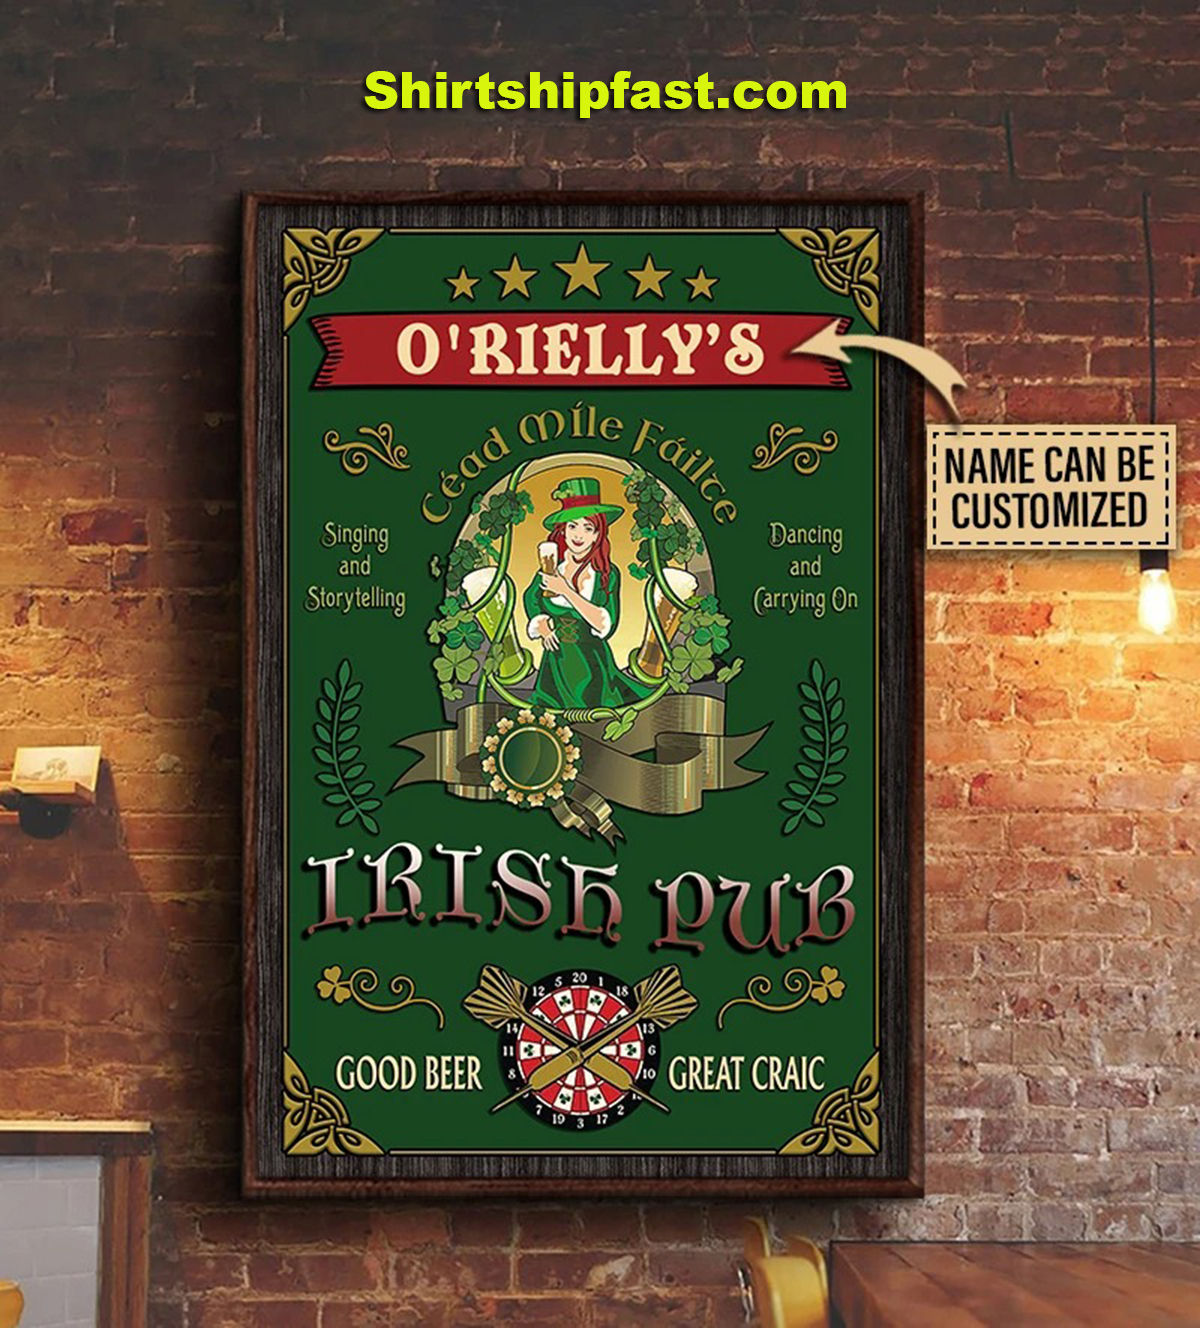 Personalized beer girl irish pub good beer great craic poster - Picture 2